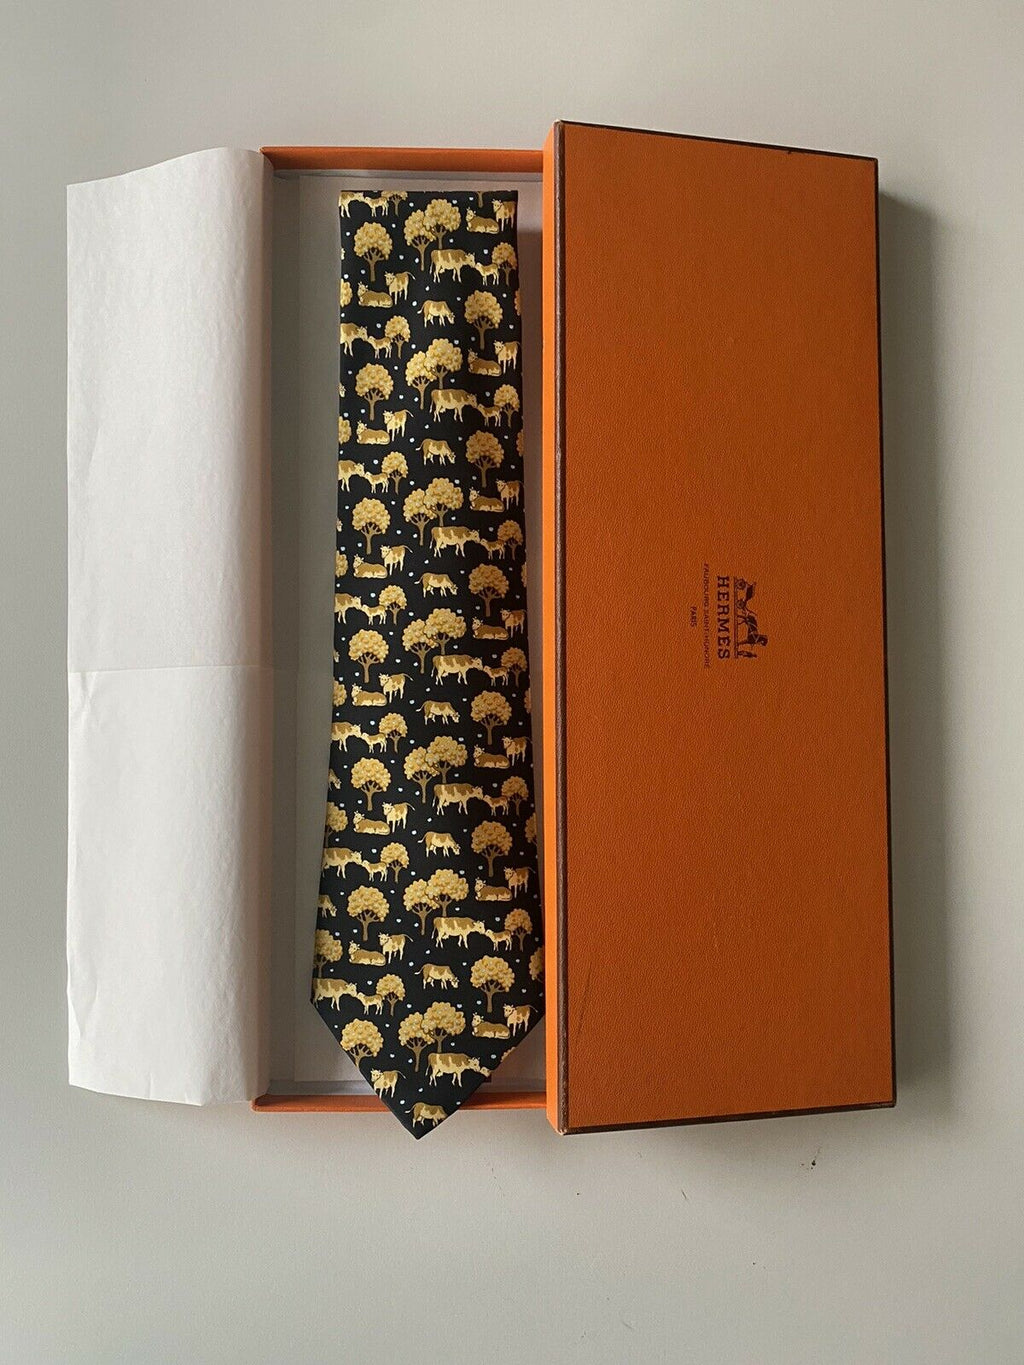 Hermes Paris Men's Black Brown Regular Size Neck Tie Cow Print Silk Graphic NEW